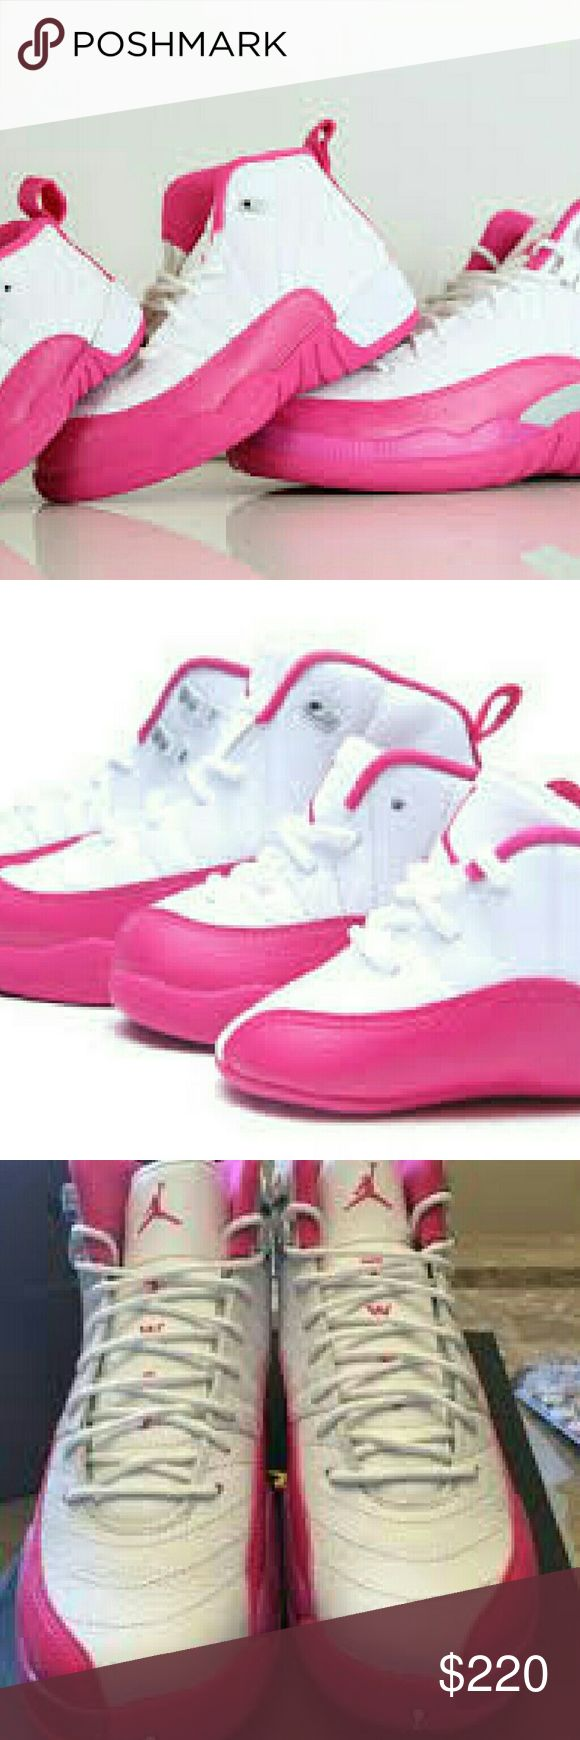 AIR JORDAN RETRO XII VALENTINE ALL SIZES AVAILABLE Air jordans all sizes available in retro xii Shoes Athletic Shoes